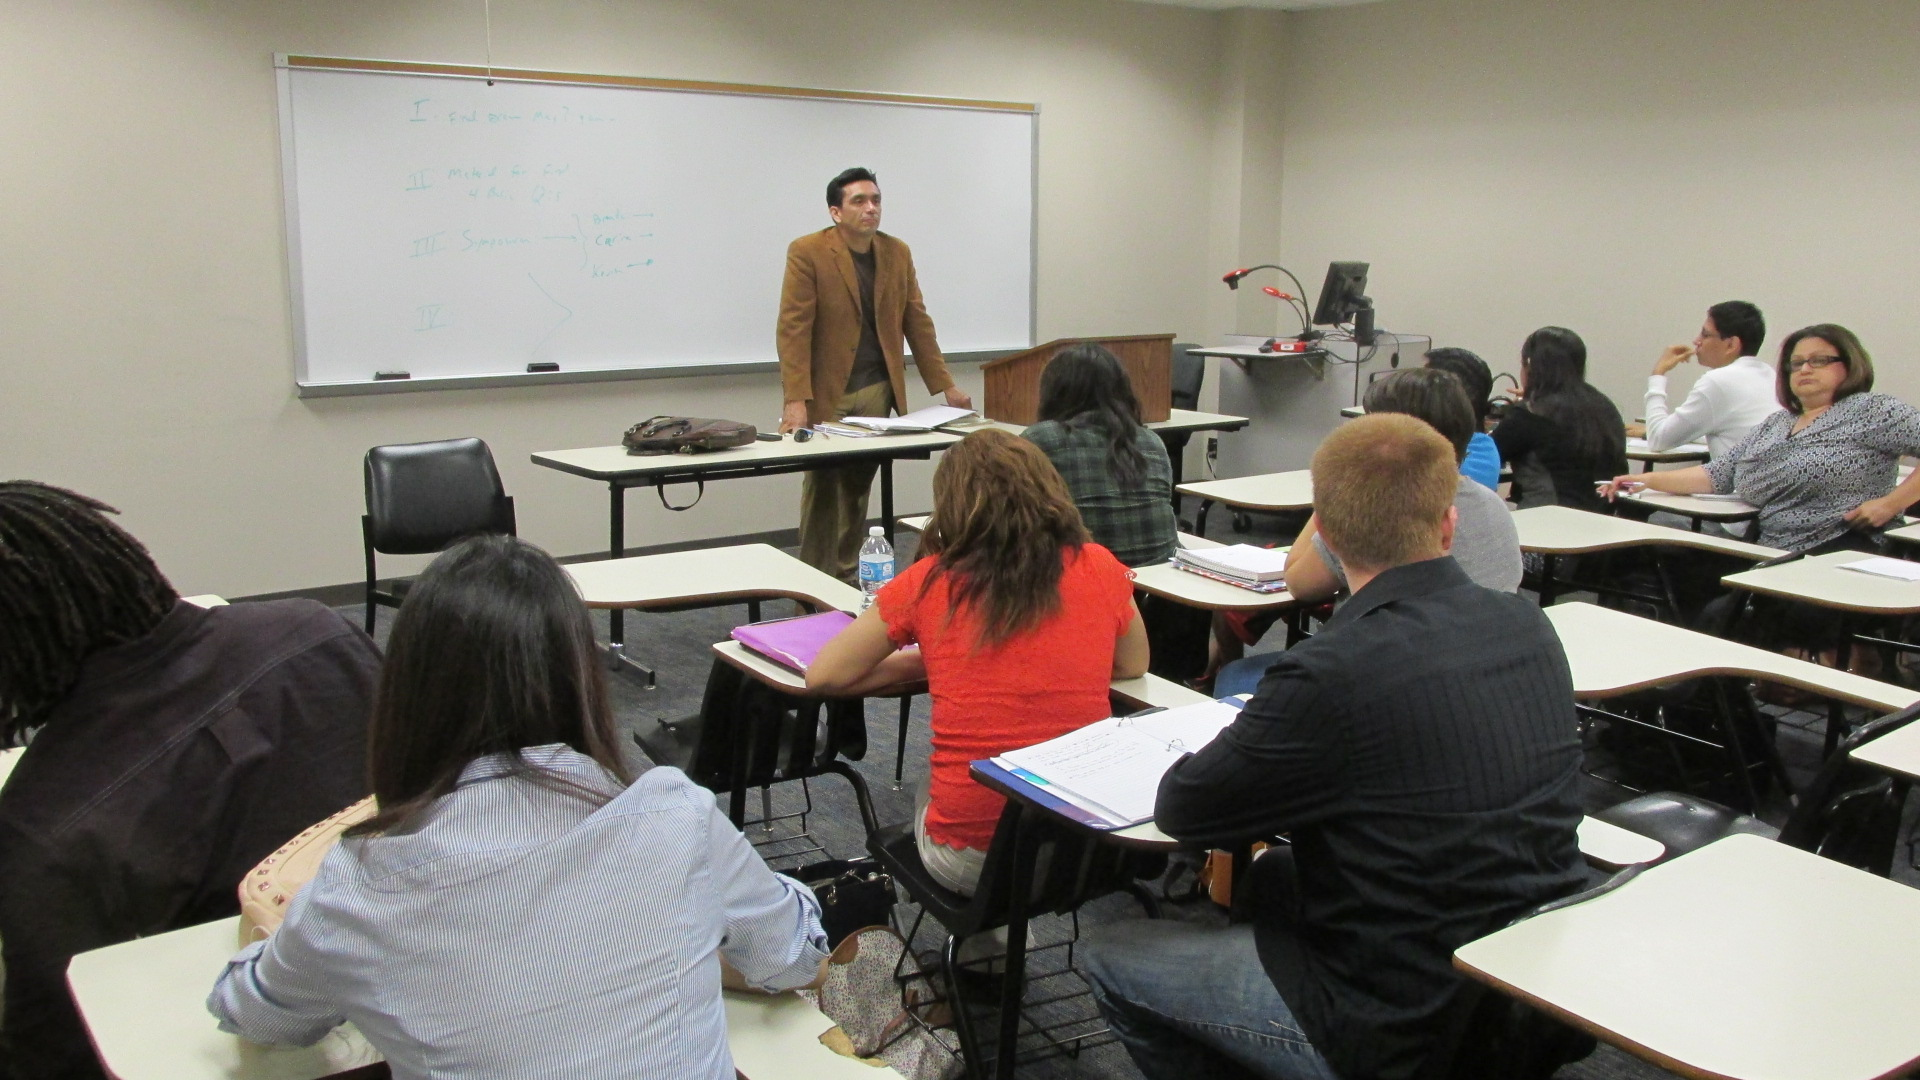 Tony Diaz, a professor at Lone Star College and also an activist with the group Librotraficante, says when students can relate more to a class, they are more engaged and do better academically. (Photo: Laura Isensee | Houston Public Media)